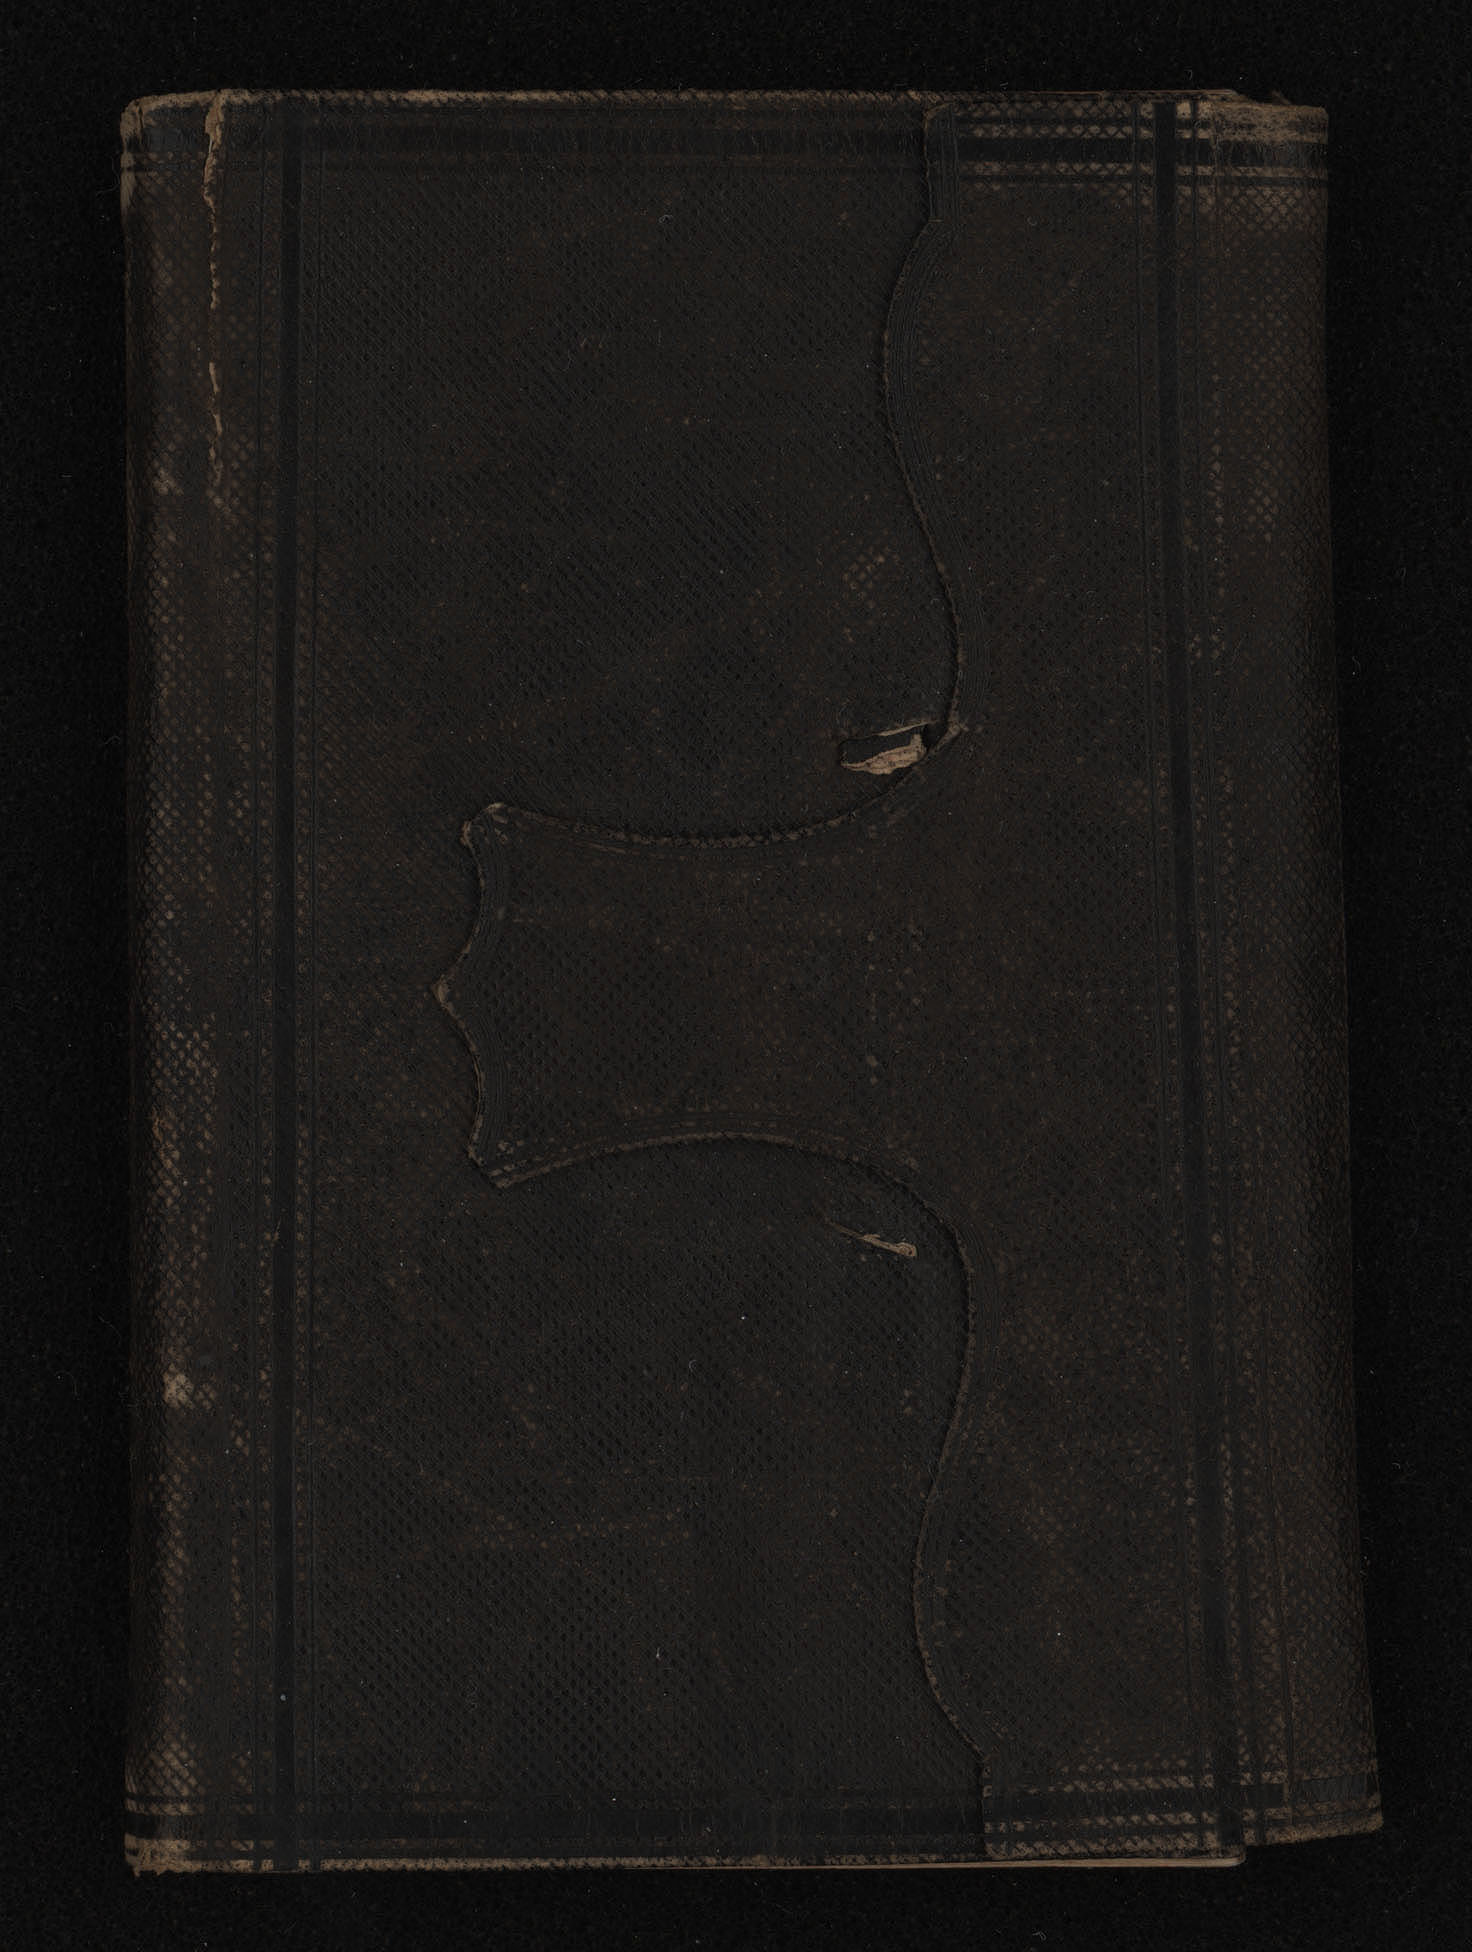 http://spec.lib.vt.edu/pickup/Omeka_upload/Ms2013-074_MantorAlfred_Diary_JPEGs/Ms2013_074_Mantor_Alfred_Diary_1864_FrontCover.jpg